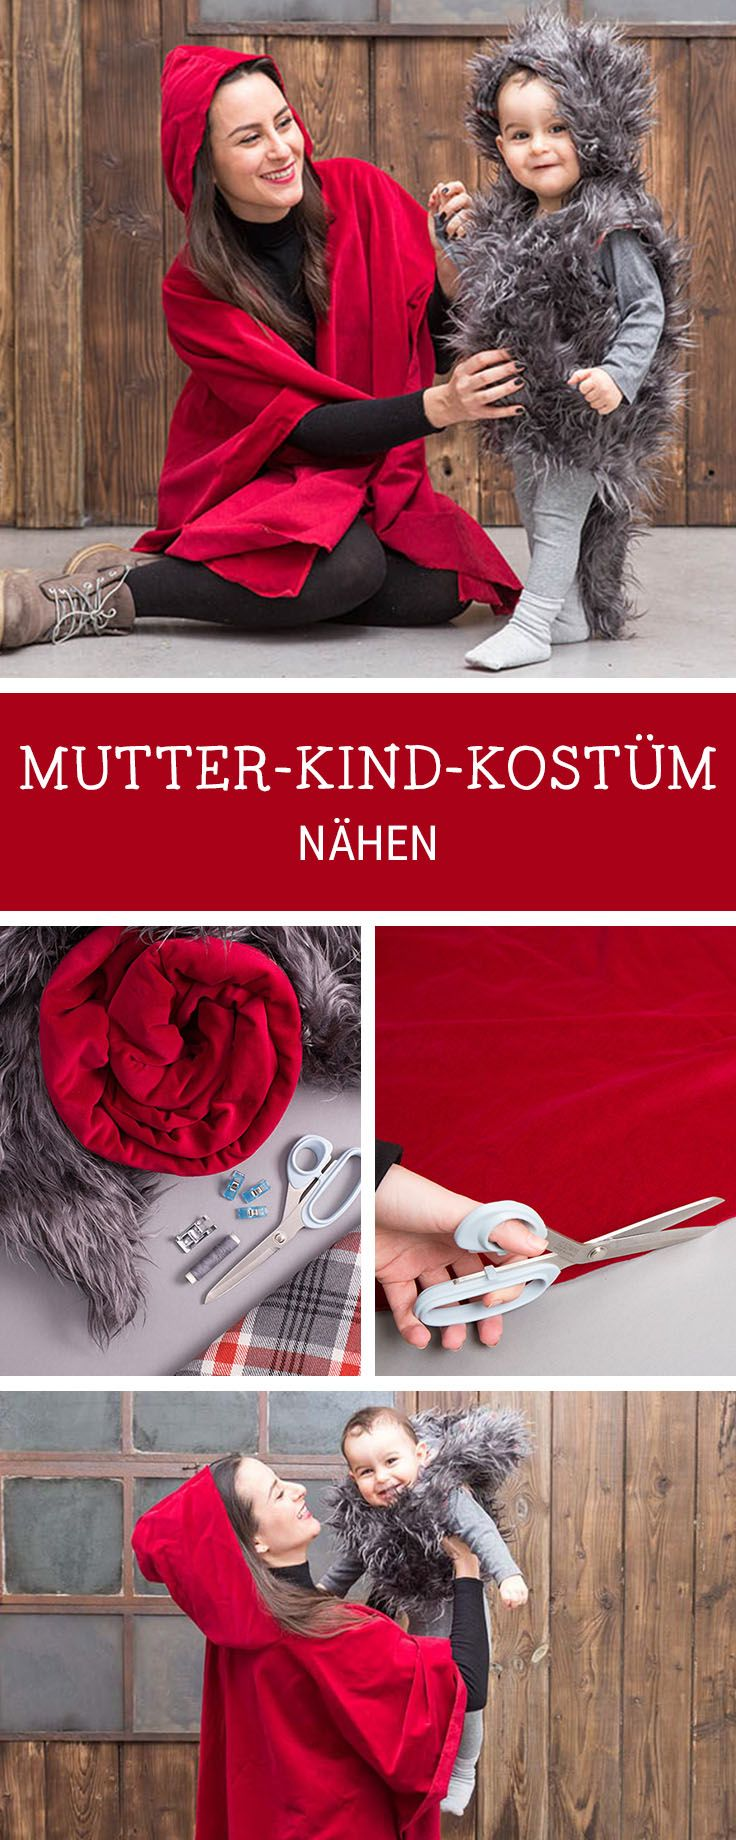 Nähanleitung für ein Mutter-Kind Kostüm / costume idea for mother and child: little red riding hood costume and wolf via DaWanda.com